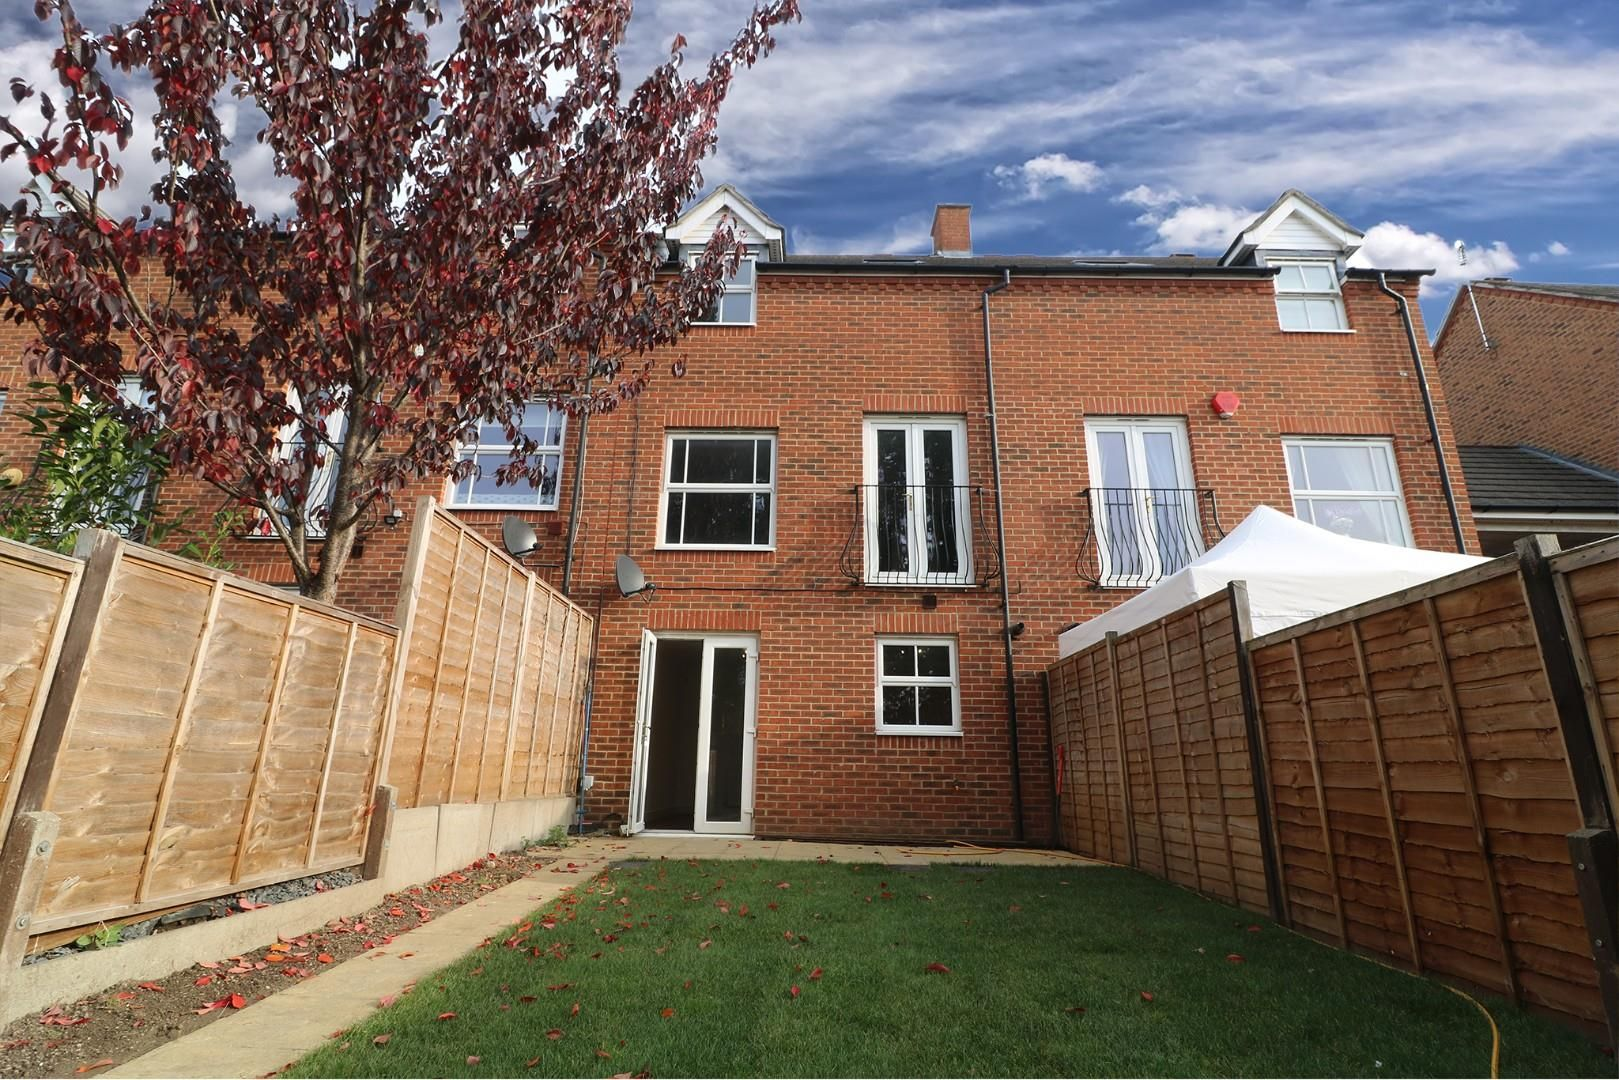 4 bed town house for sale - Property Image 1